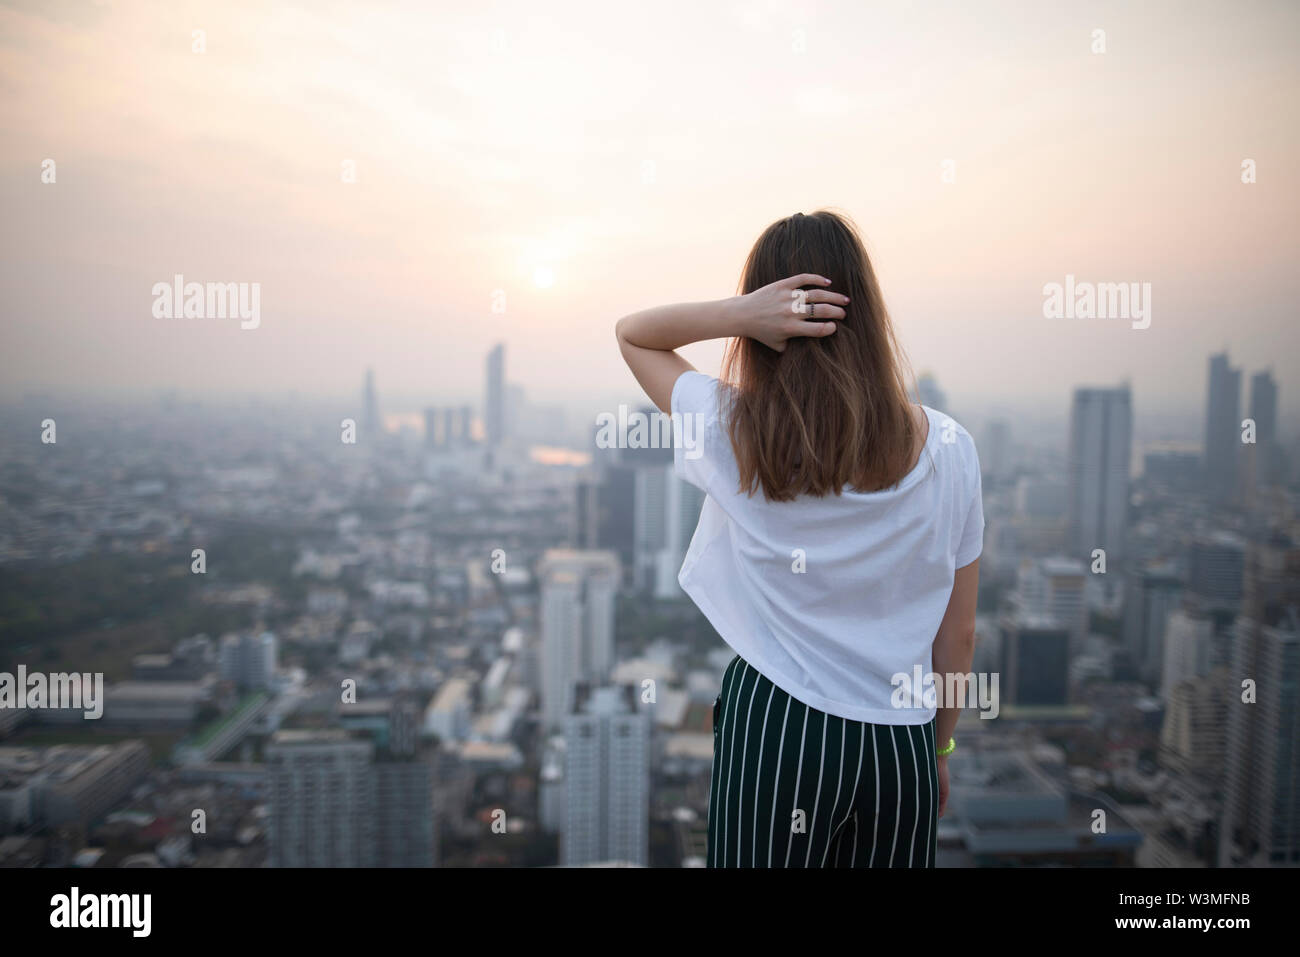 Young woman and cityscape of Bangkok, Thailand - Stock Image